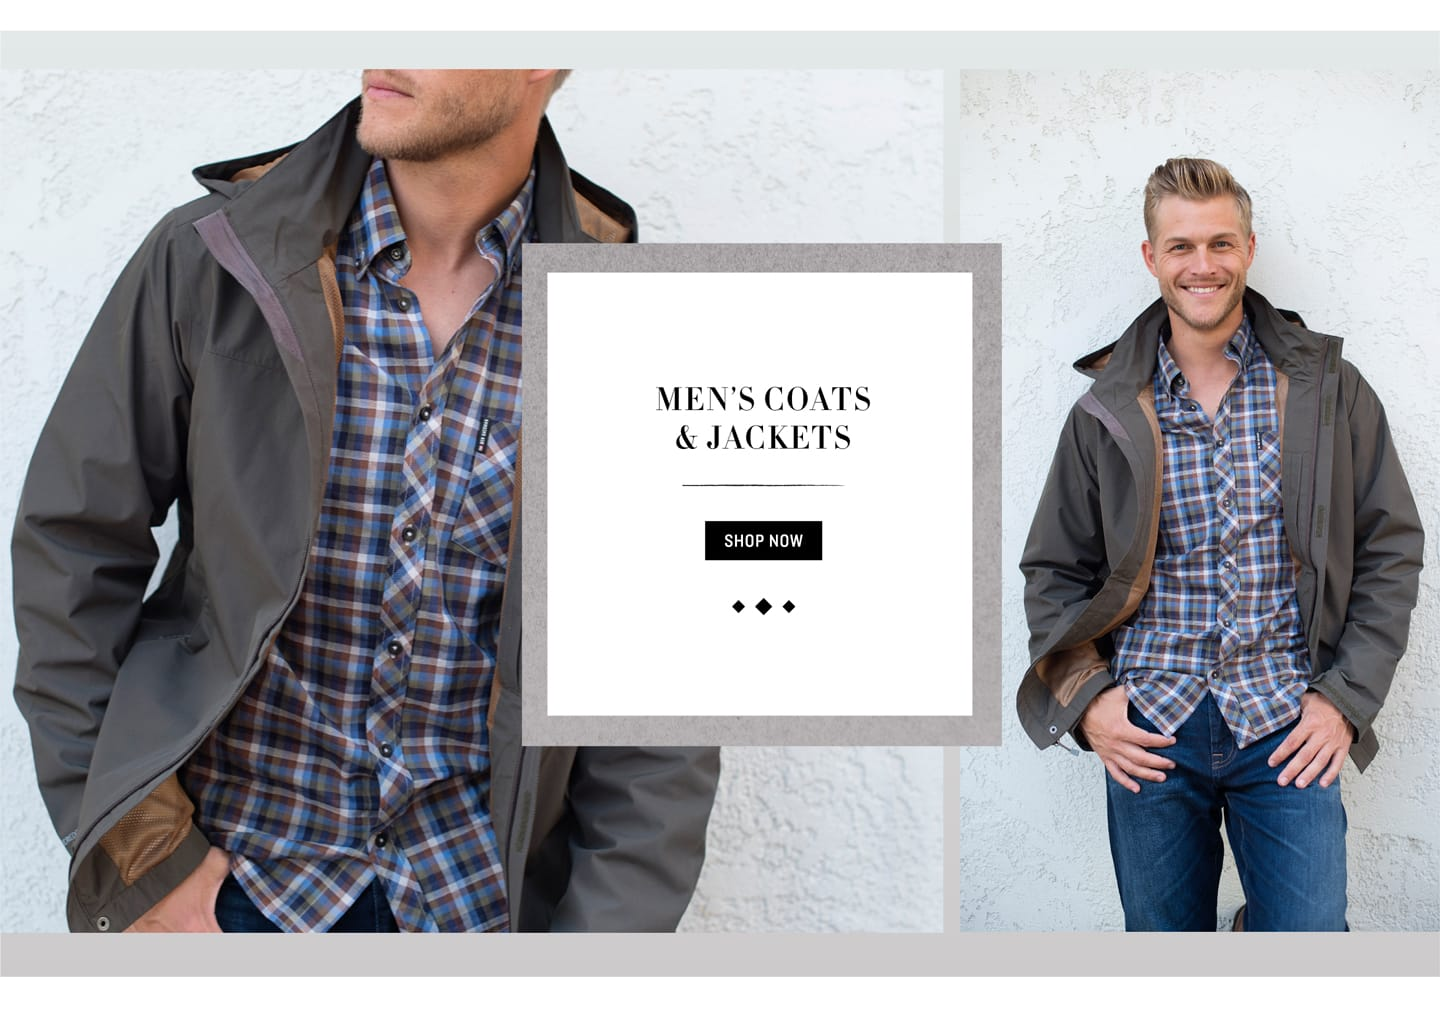 Shop Men's Coats & Jackets